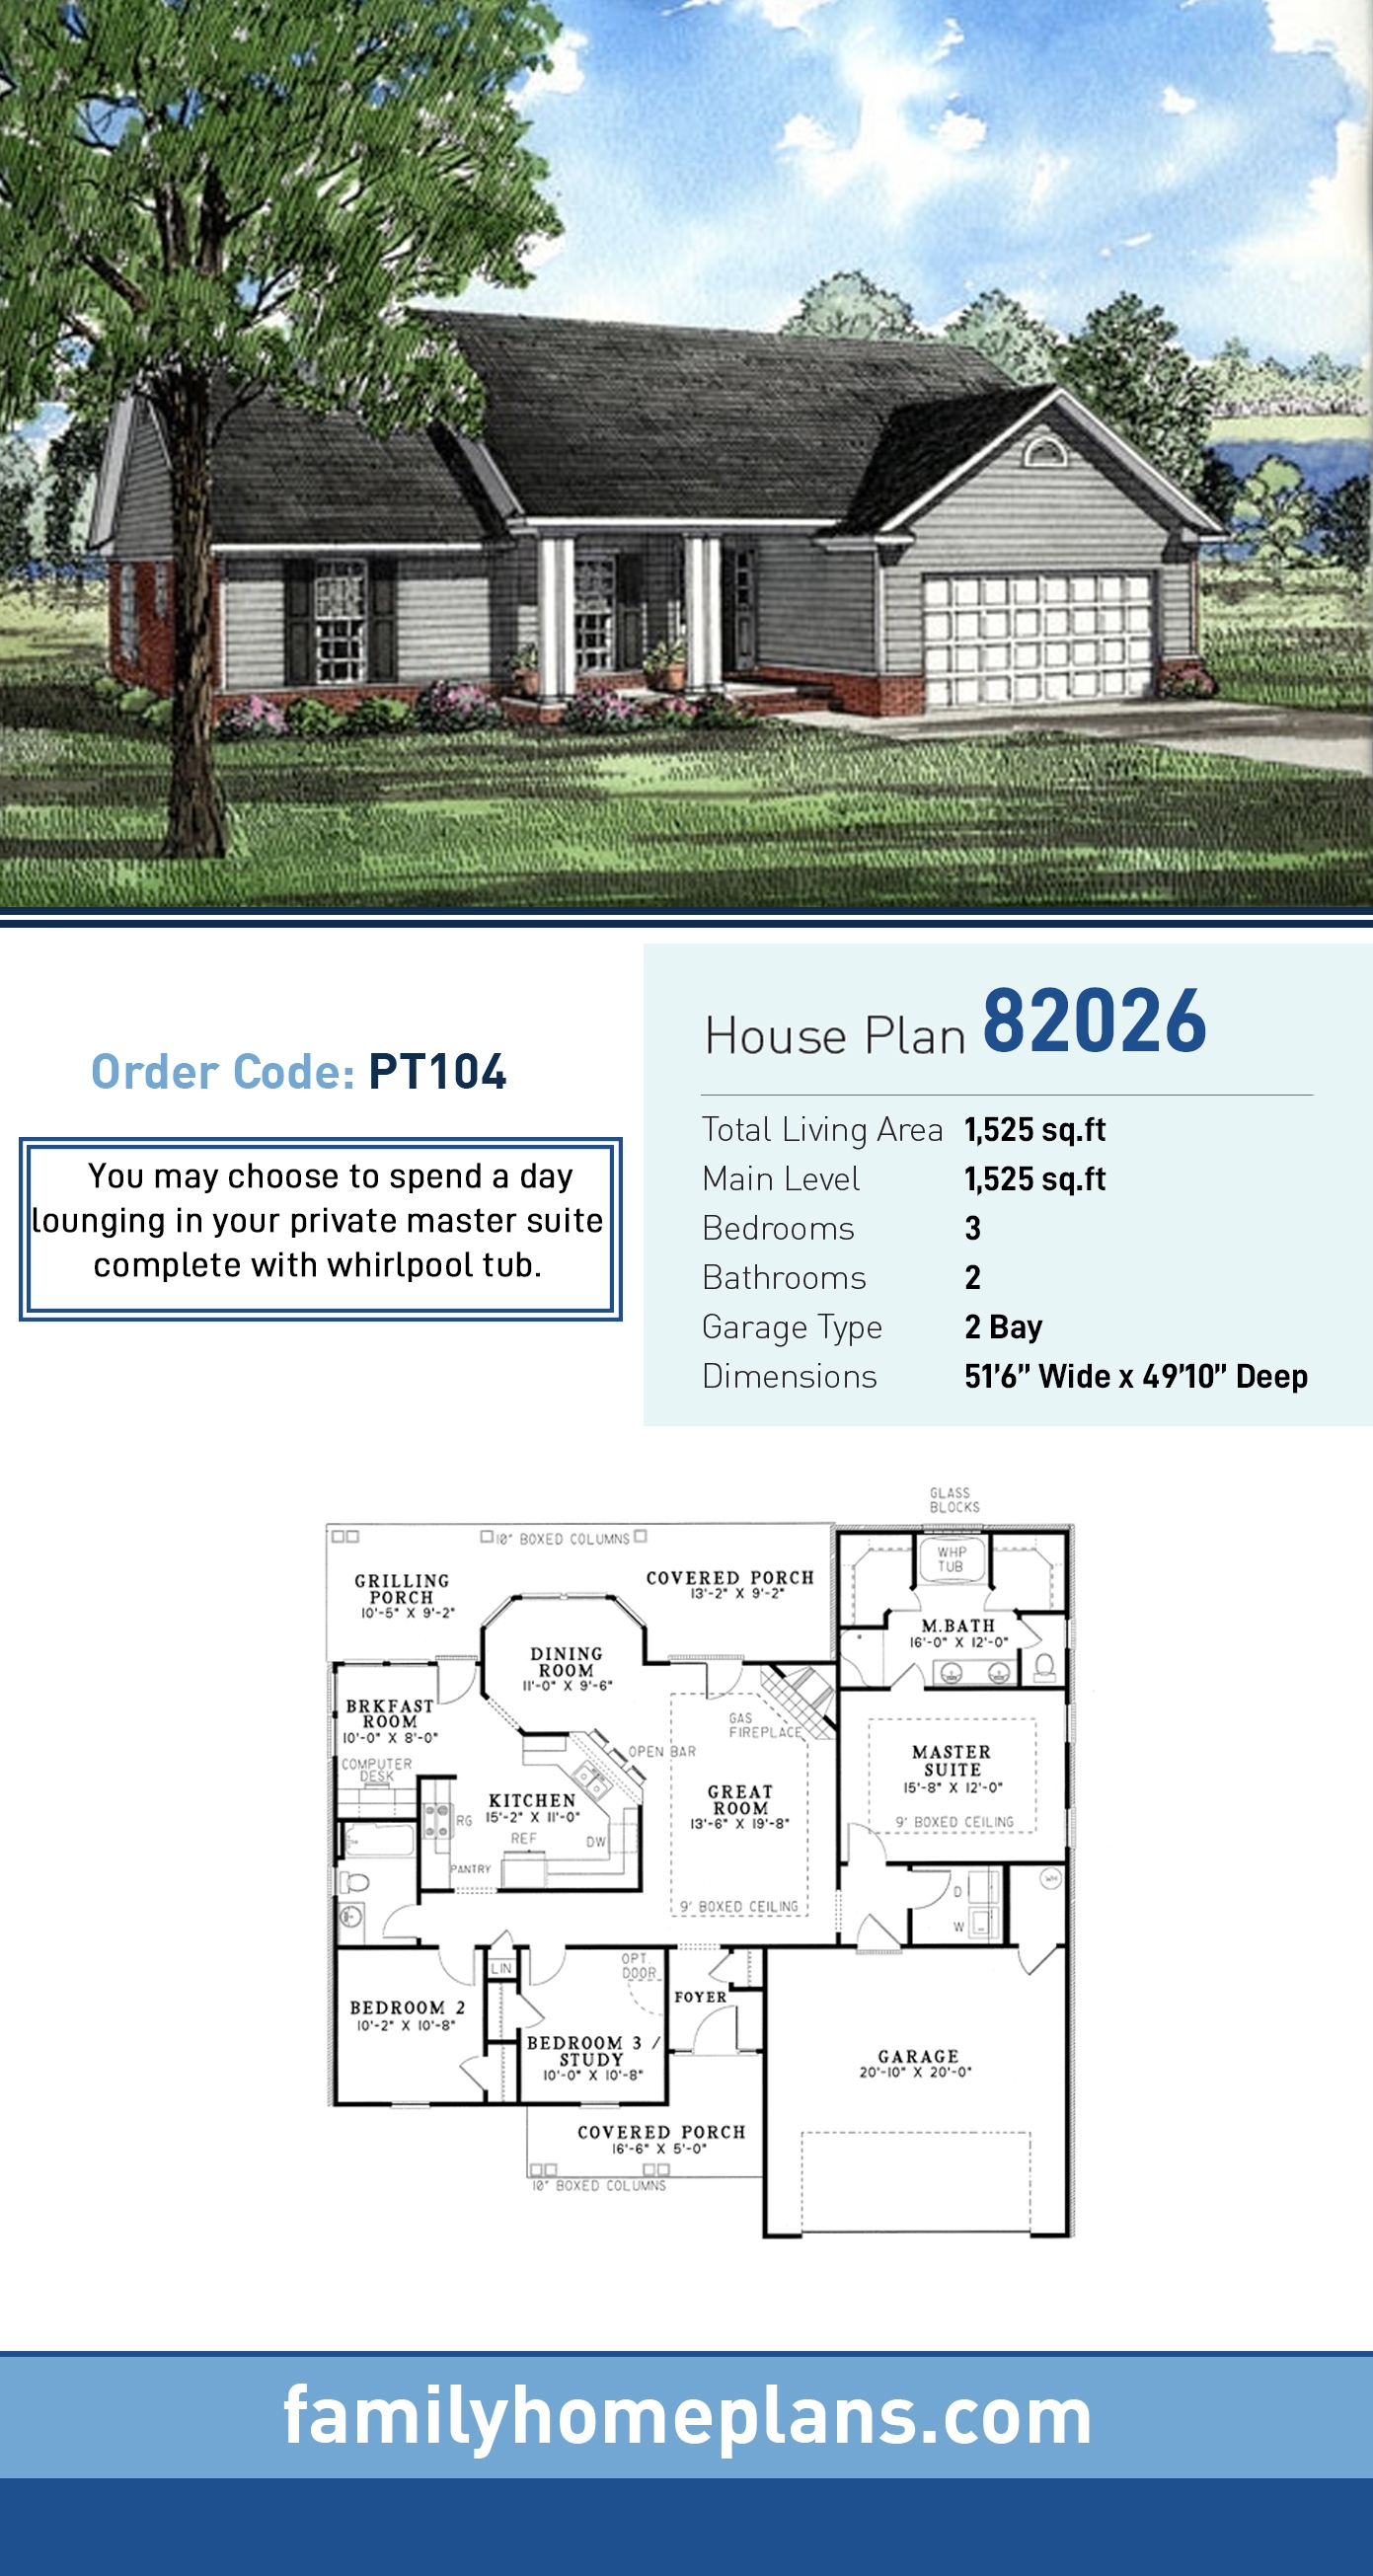 Ranch House Plan 82026 with 3 Beds, 2 Baths, 2 Car Garage